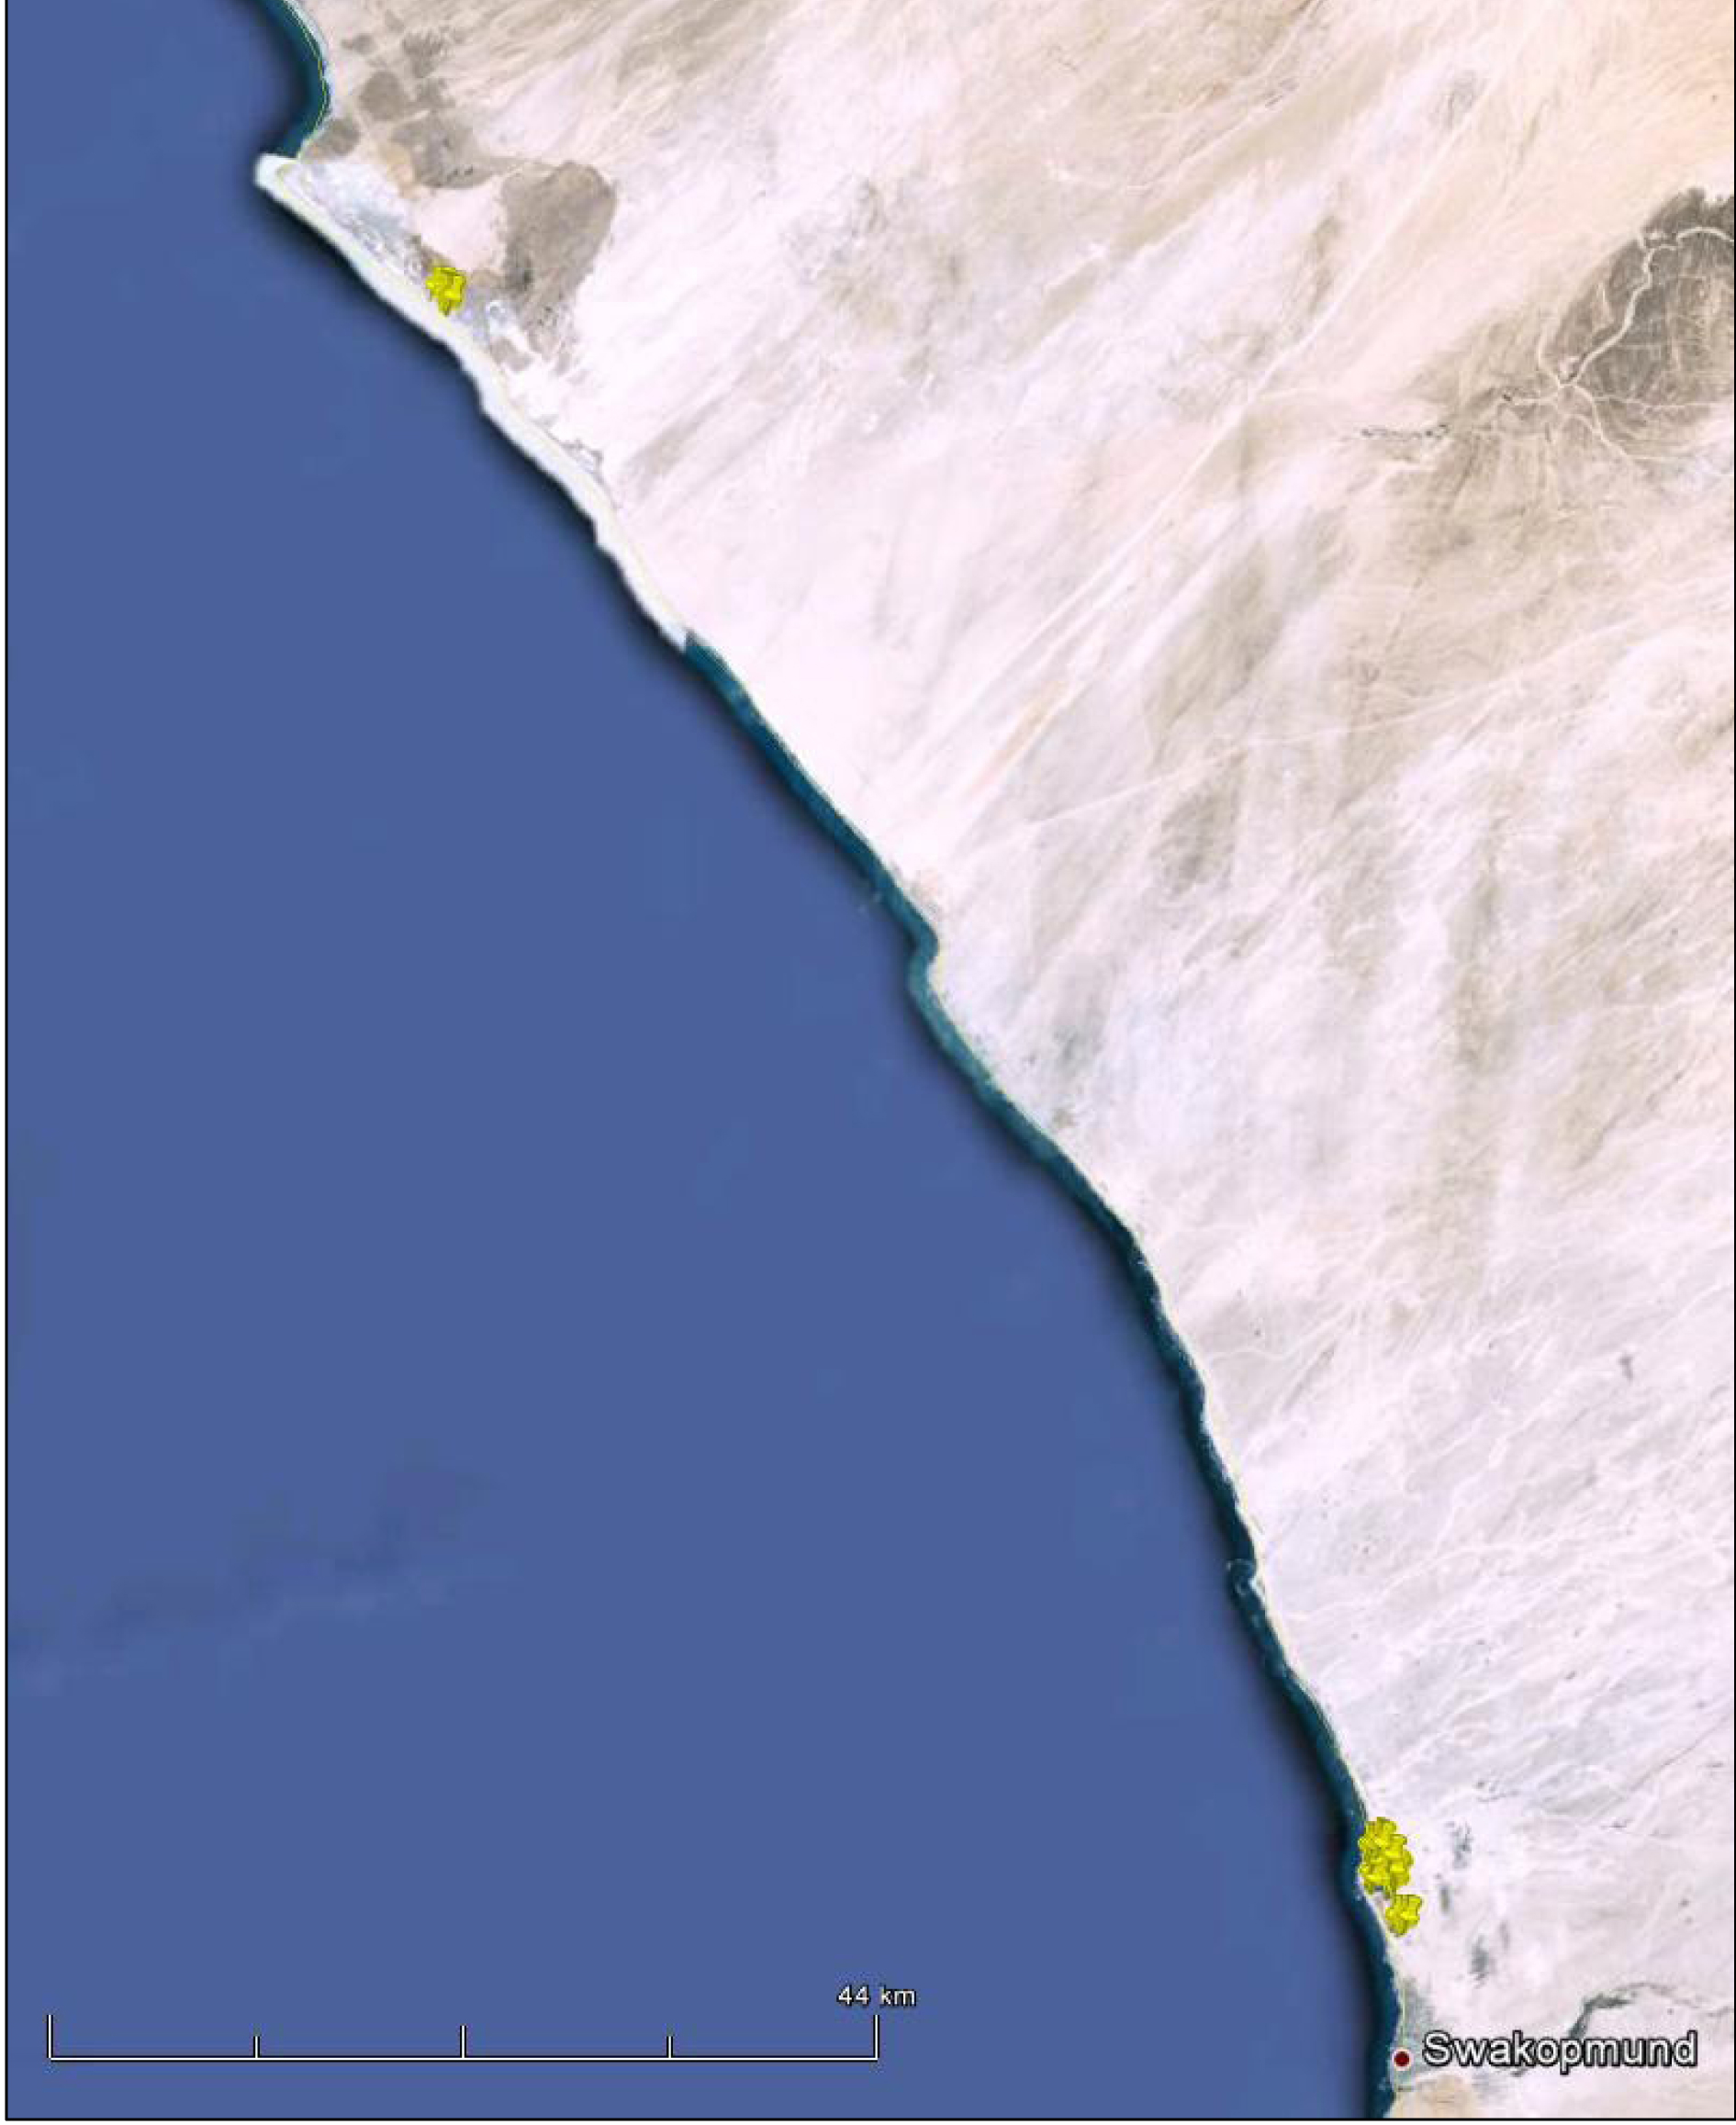 Localities (yellow markers) recorded for a lesser Flamingo (based on a Google map compiled by John Mendelsohn: Raison).